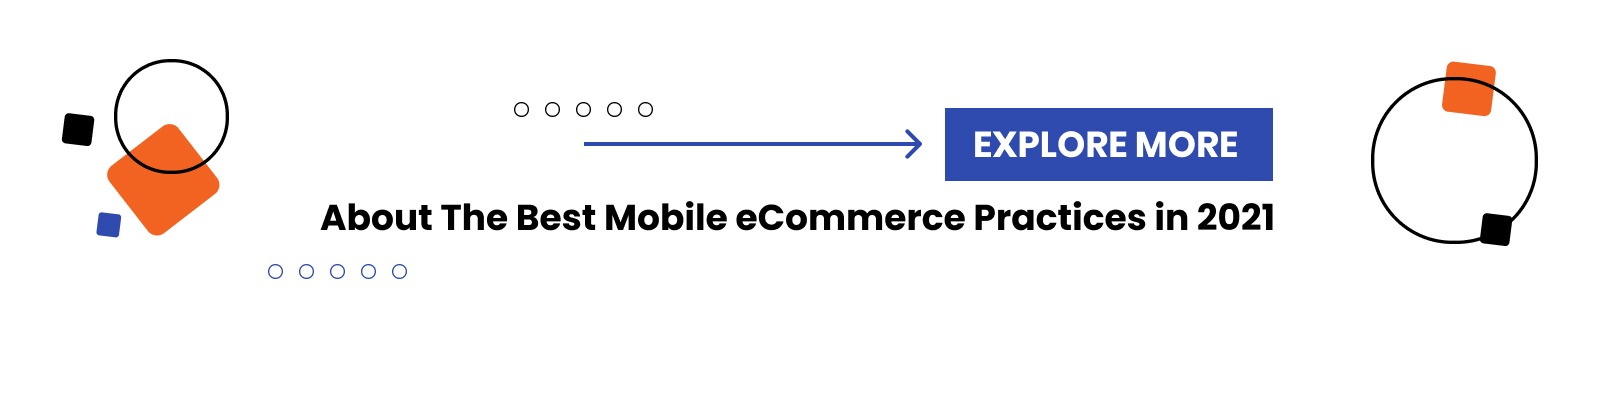 Magento Mobile App Features - The Best Mobile eCommerce Practices to Follow in 2021